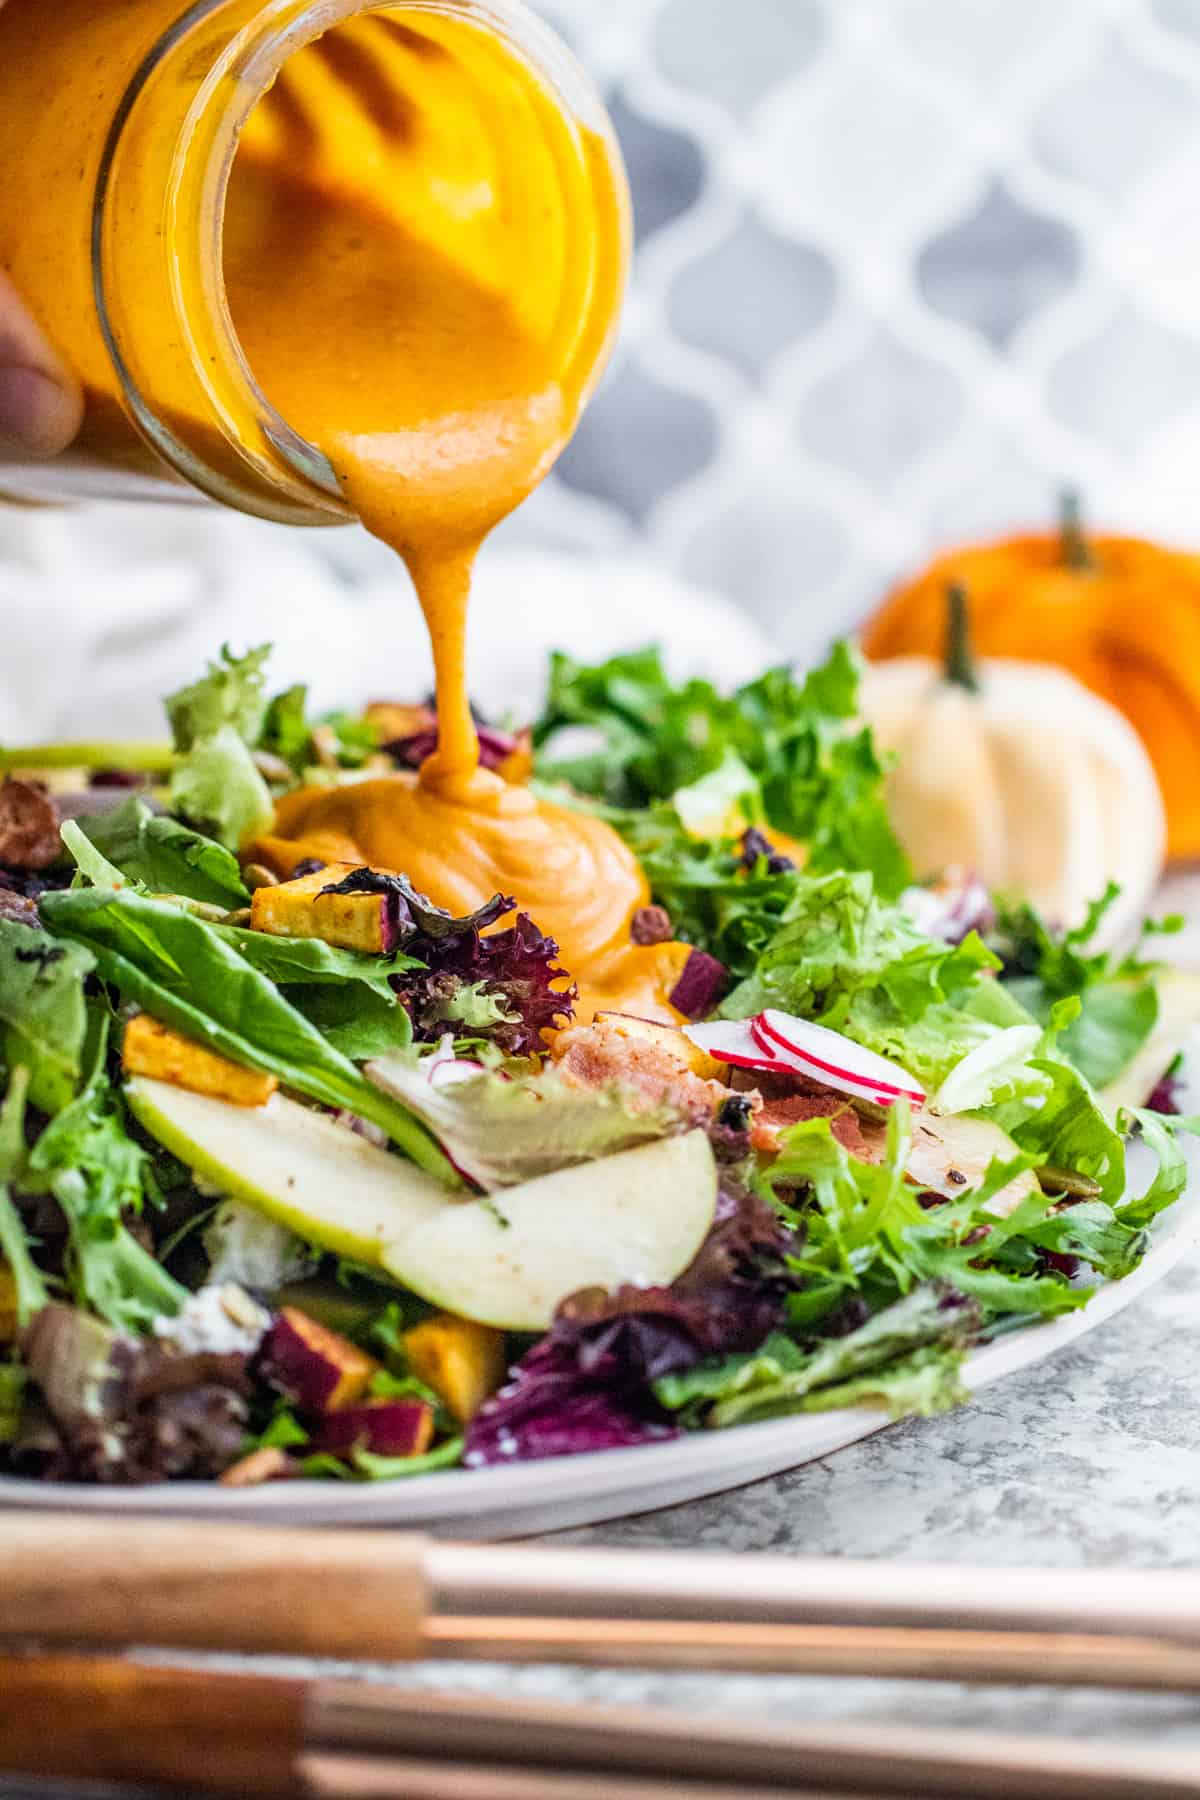 Hand pouring pumpkin dressing over greens.